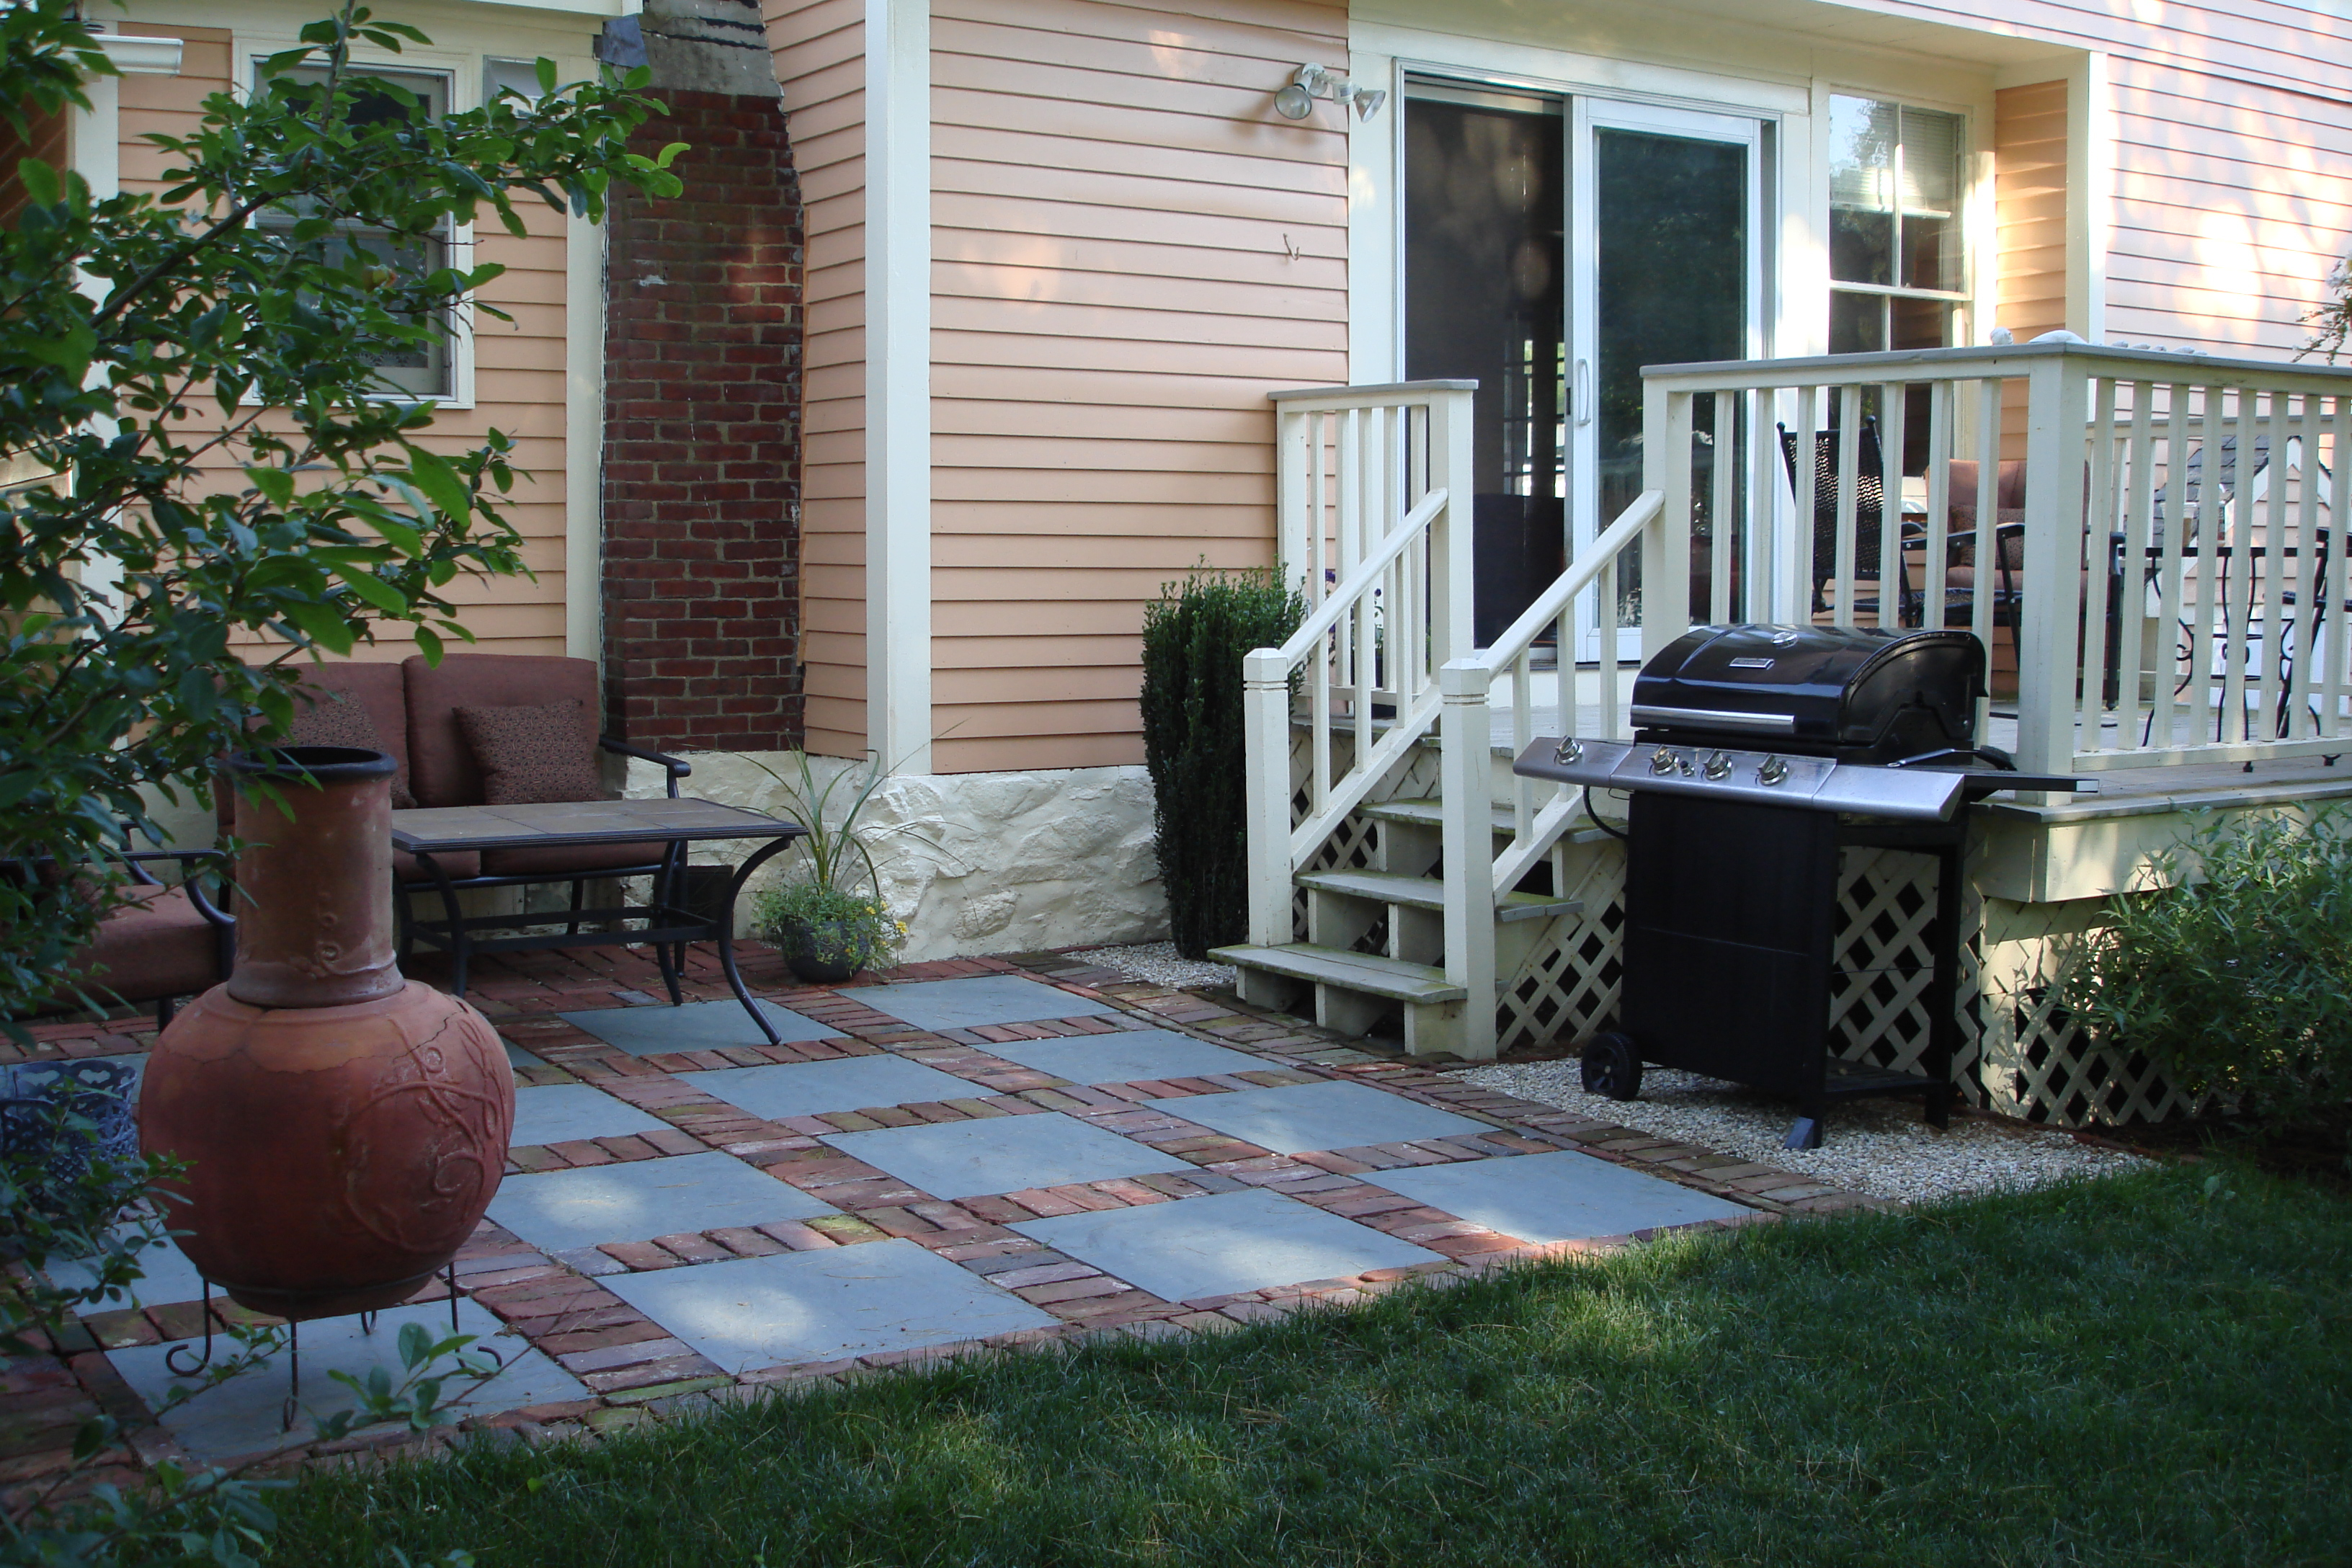 Lovely Patio Design Ideas On A Budget And Garden Ideas Small intended for Small Backyard Patio Ideas On A Budget